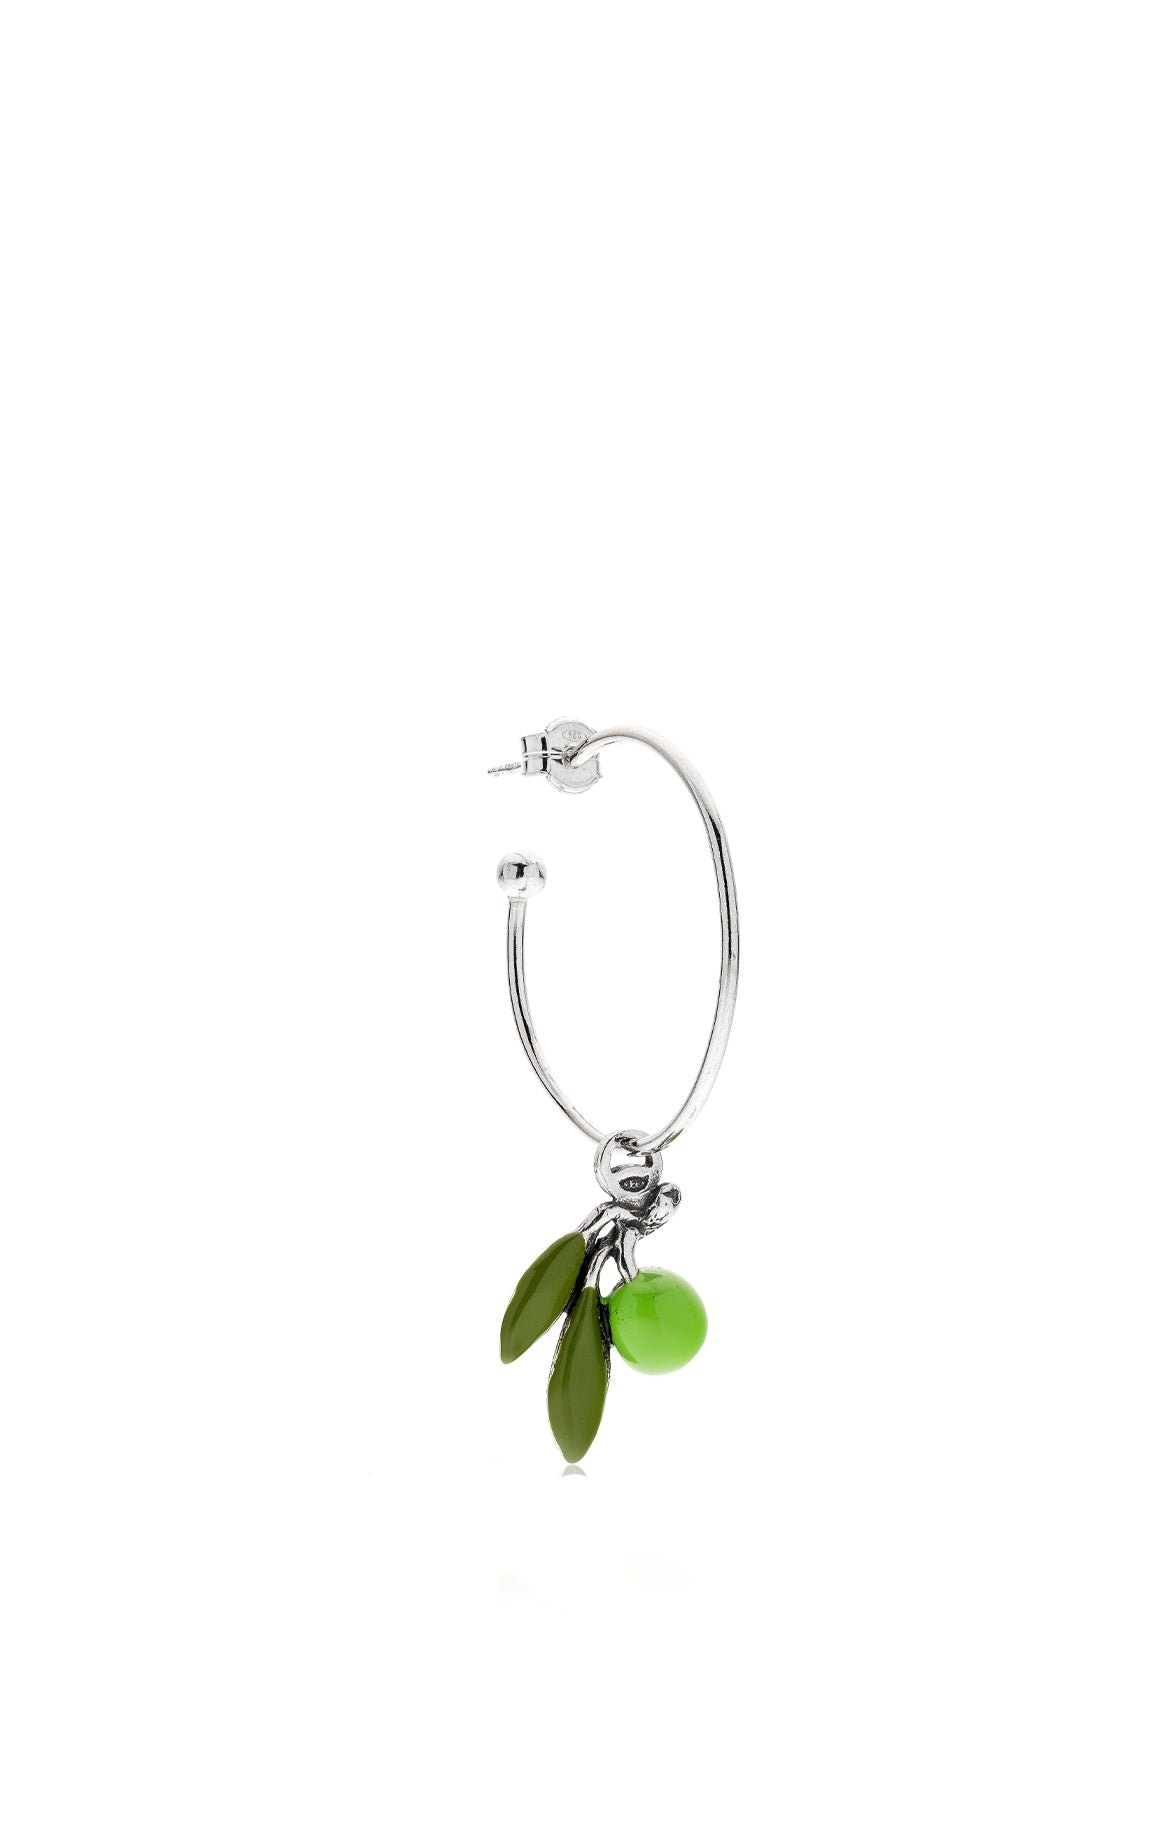 The Large Hoop Single Earring with Olive Charm